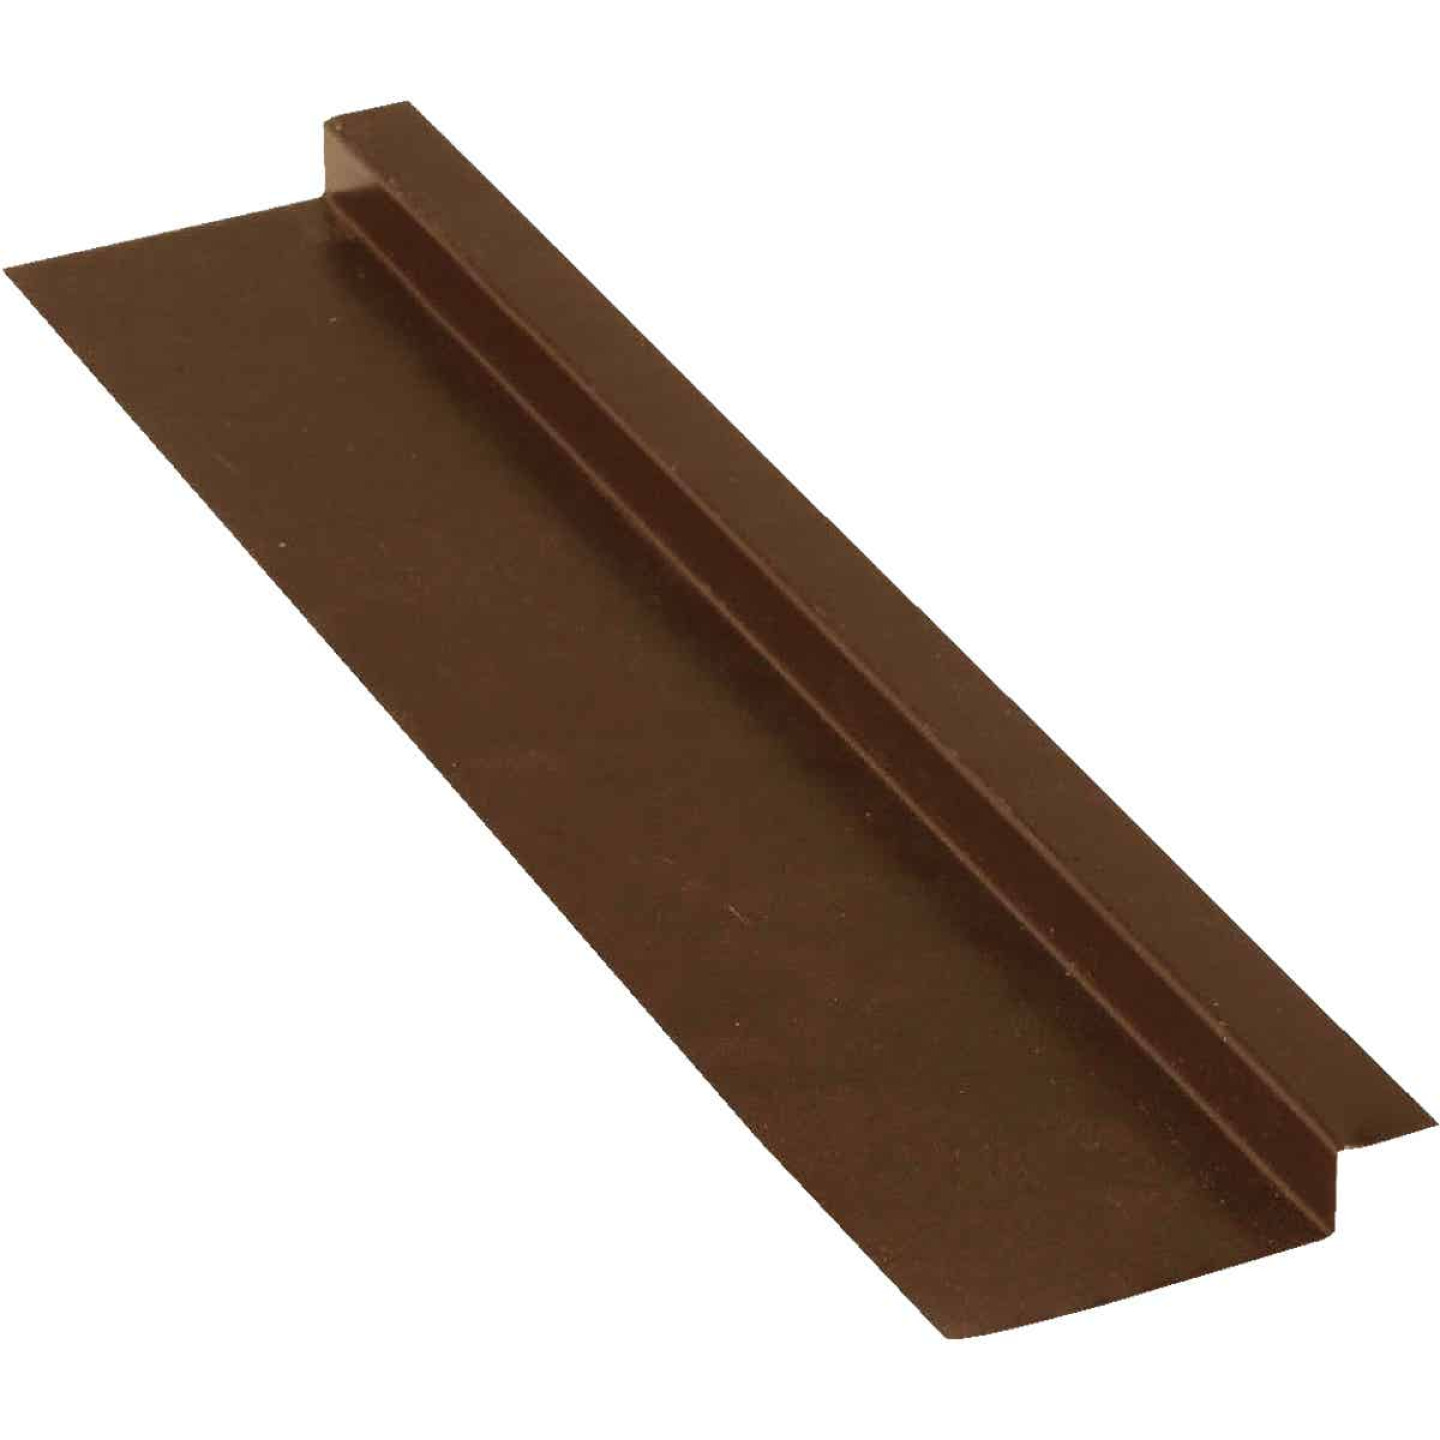 NorWesco 3/8 In. x 5/8 In. x 2 In. x 10 Ft. Brown Galvanized Ply Edge Z-Style Flashing Image 1